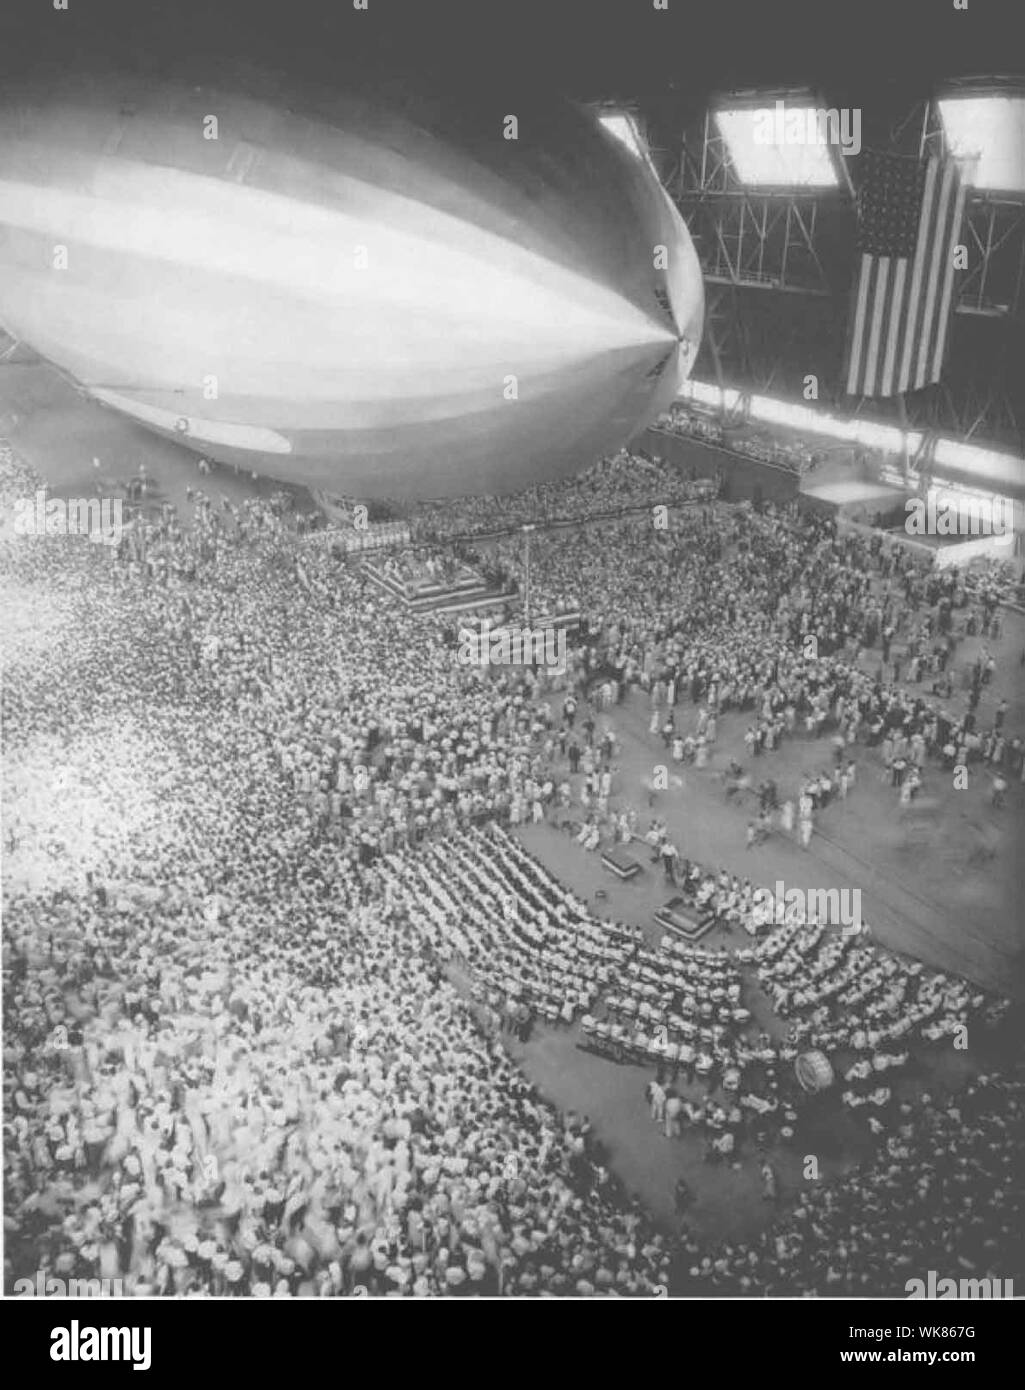 Commissioning ceremony for either the USS Akron or the USS Macon. These ridged airships, were flying aircraft carriers, that's the difference between them and blimps. Blimps were the K-Ships, the ZP Squadron. Stock Photo